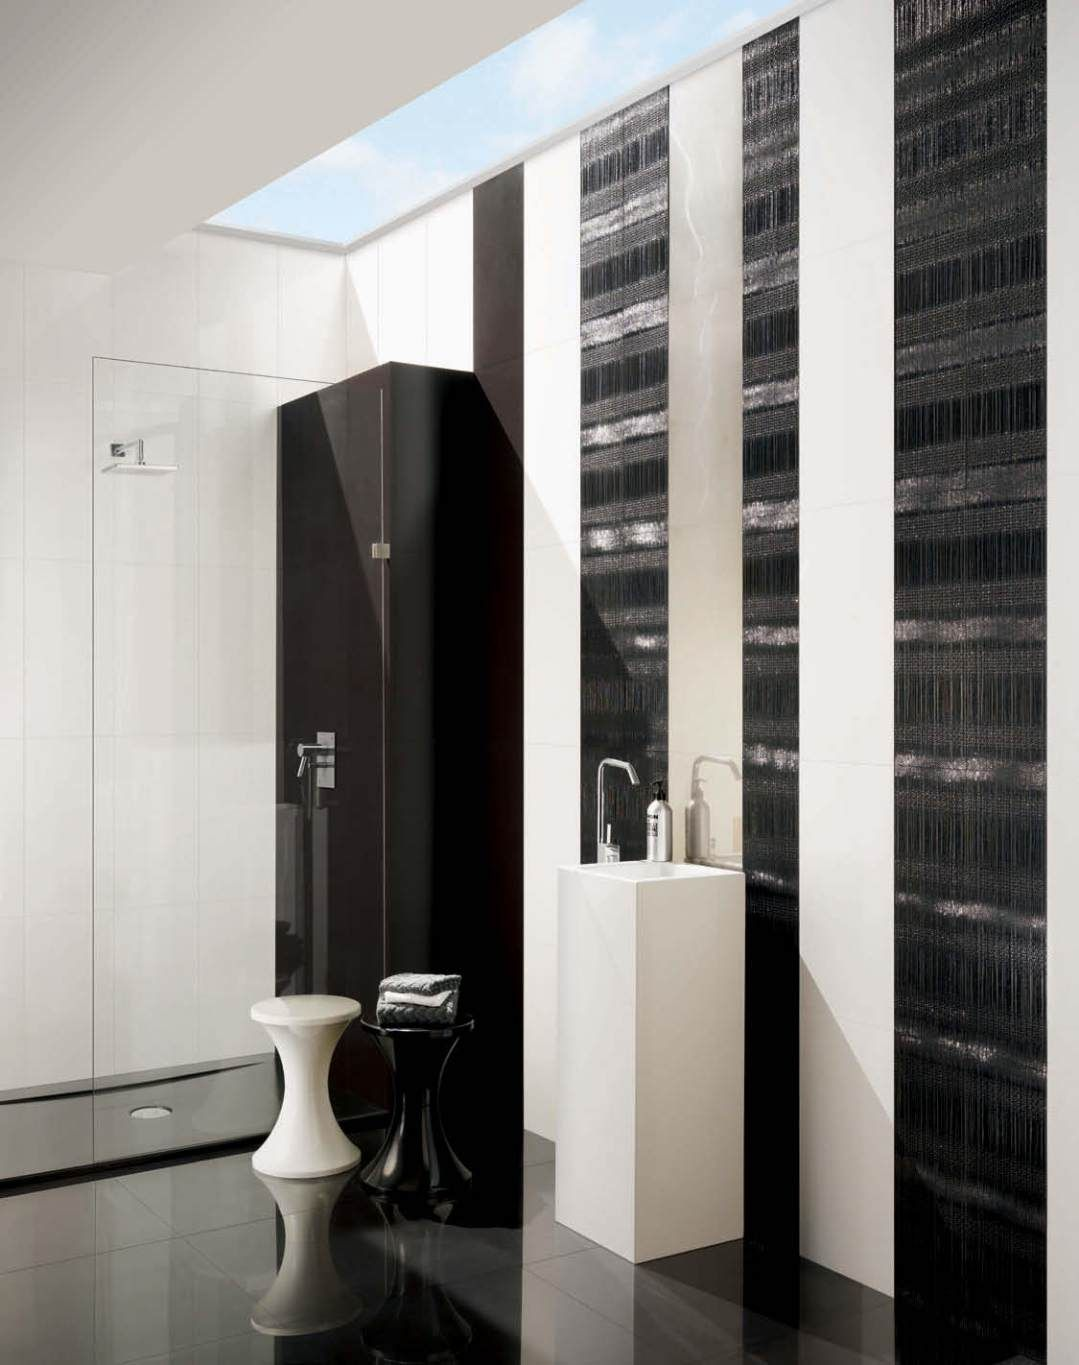 preto brilho marfim espelhomiror split preto cromatica jet bathroom design black and white classy available at our showroom lebanon - Bathroom Designs Lebanon